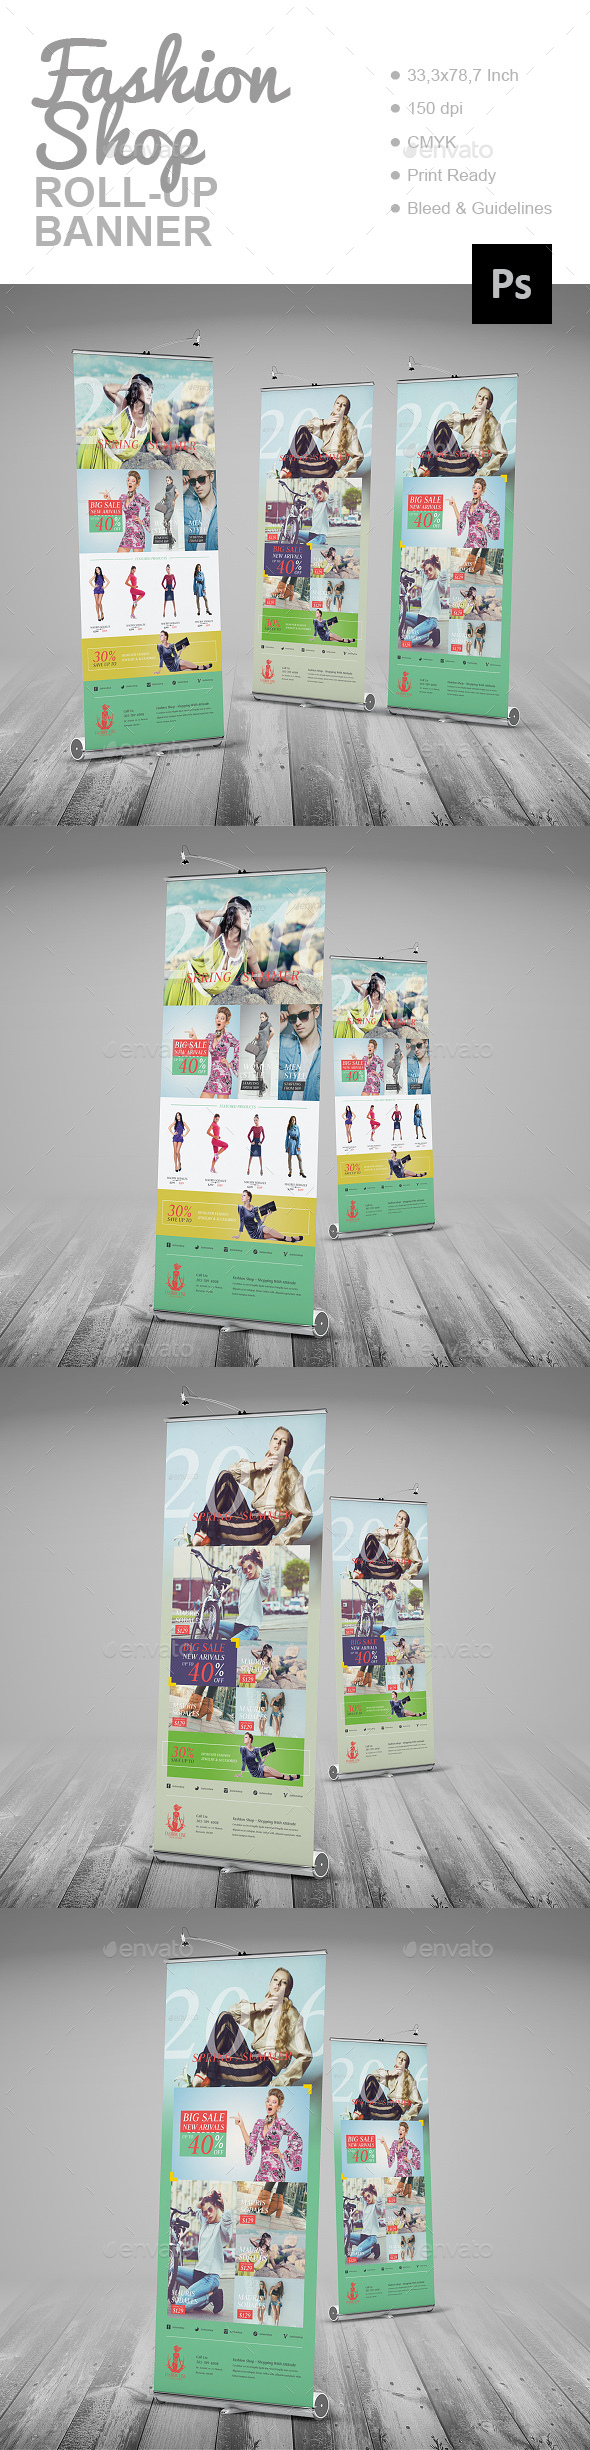 Fashion Shop Roll-Up Banner - Signage Print Templates